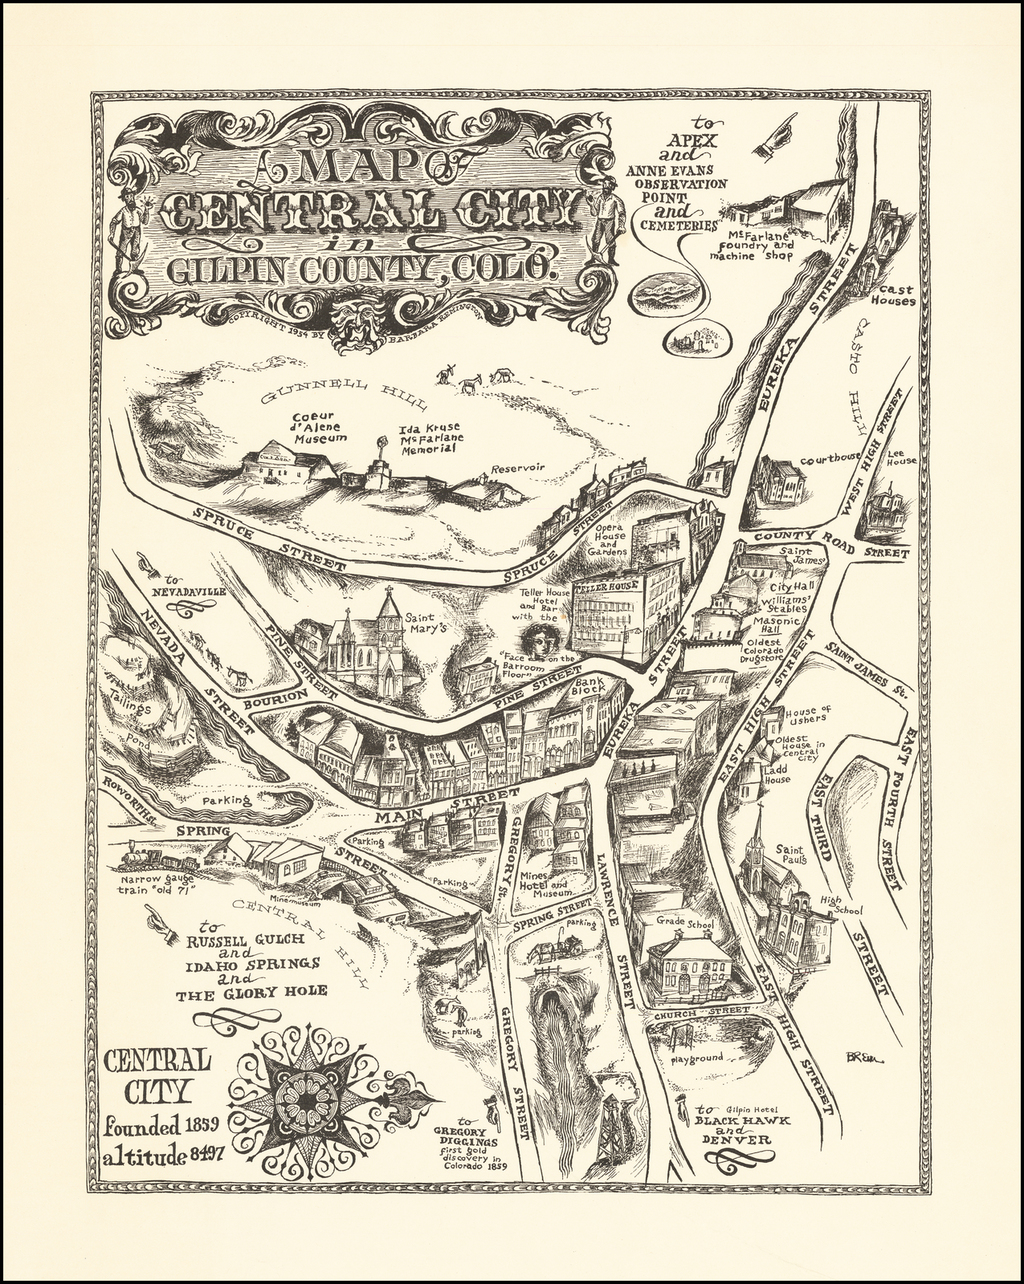 A Map of Central City in Gilpin County, Colo. By Barbara Remington